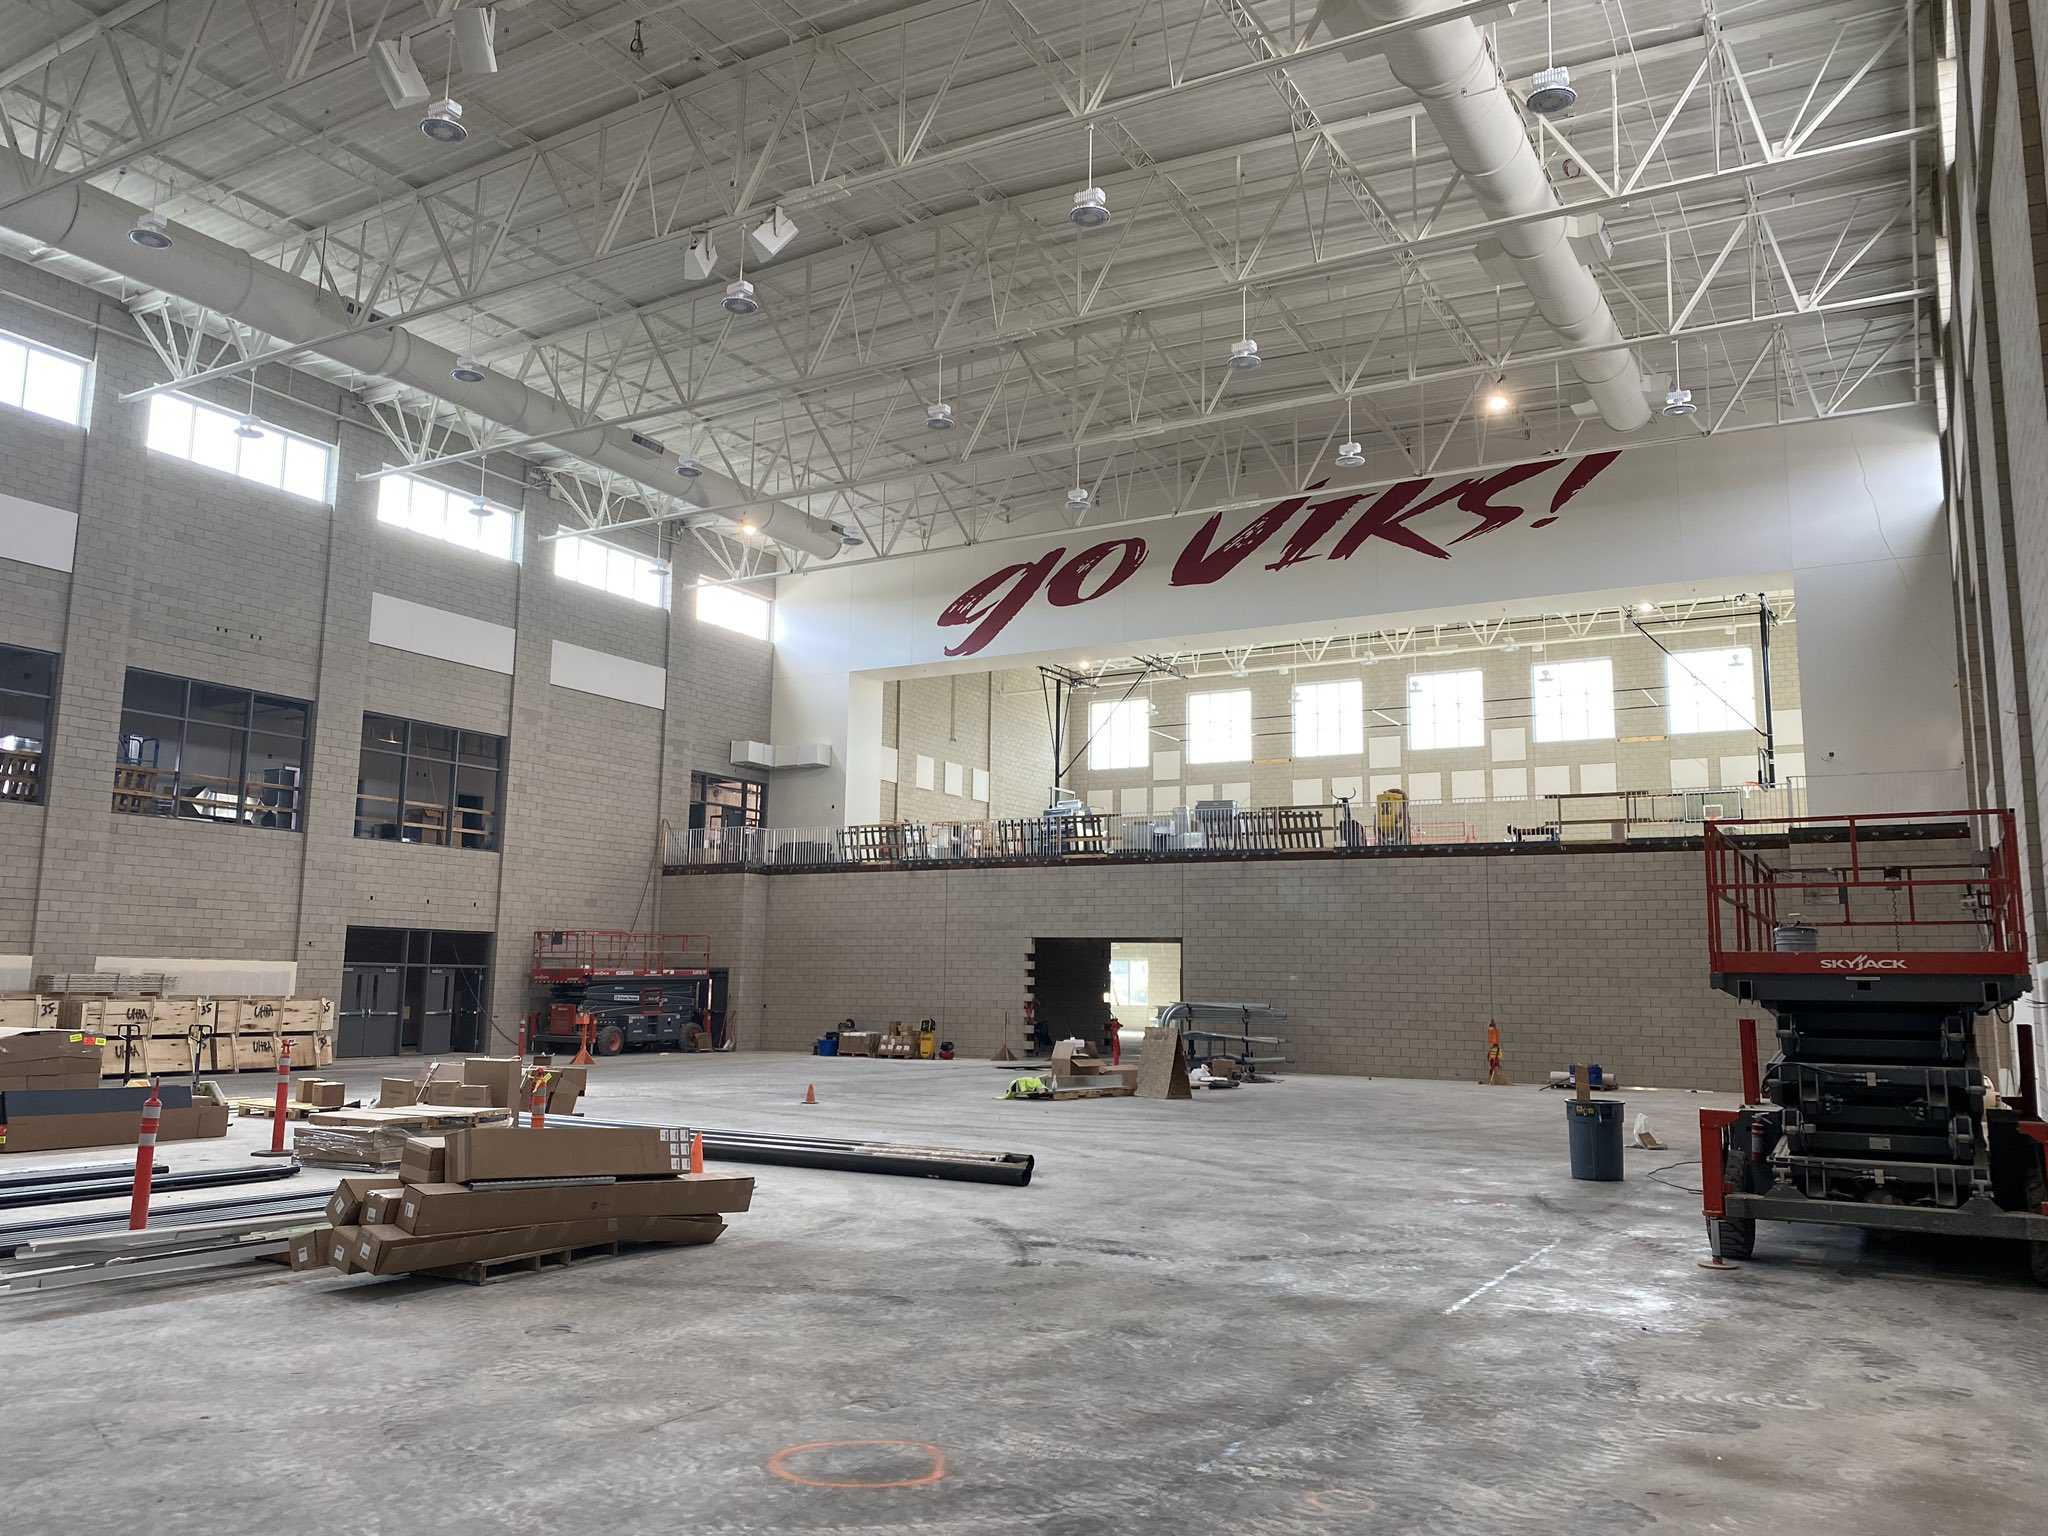 Construction on the North Salem gym is scheduled to be completed in August. (Photo courtesy North Salem HS)